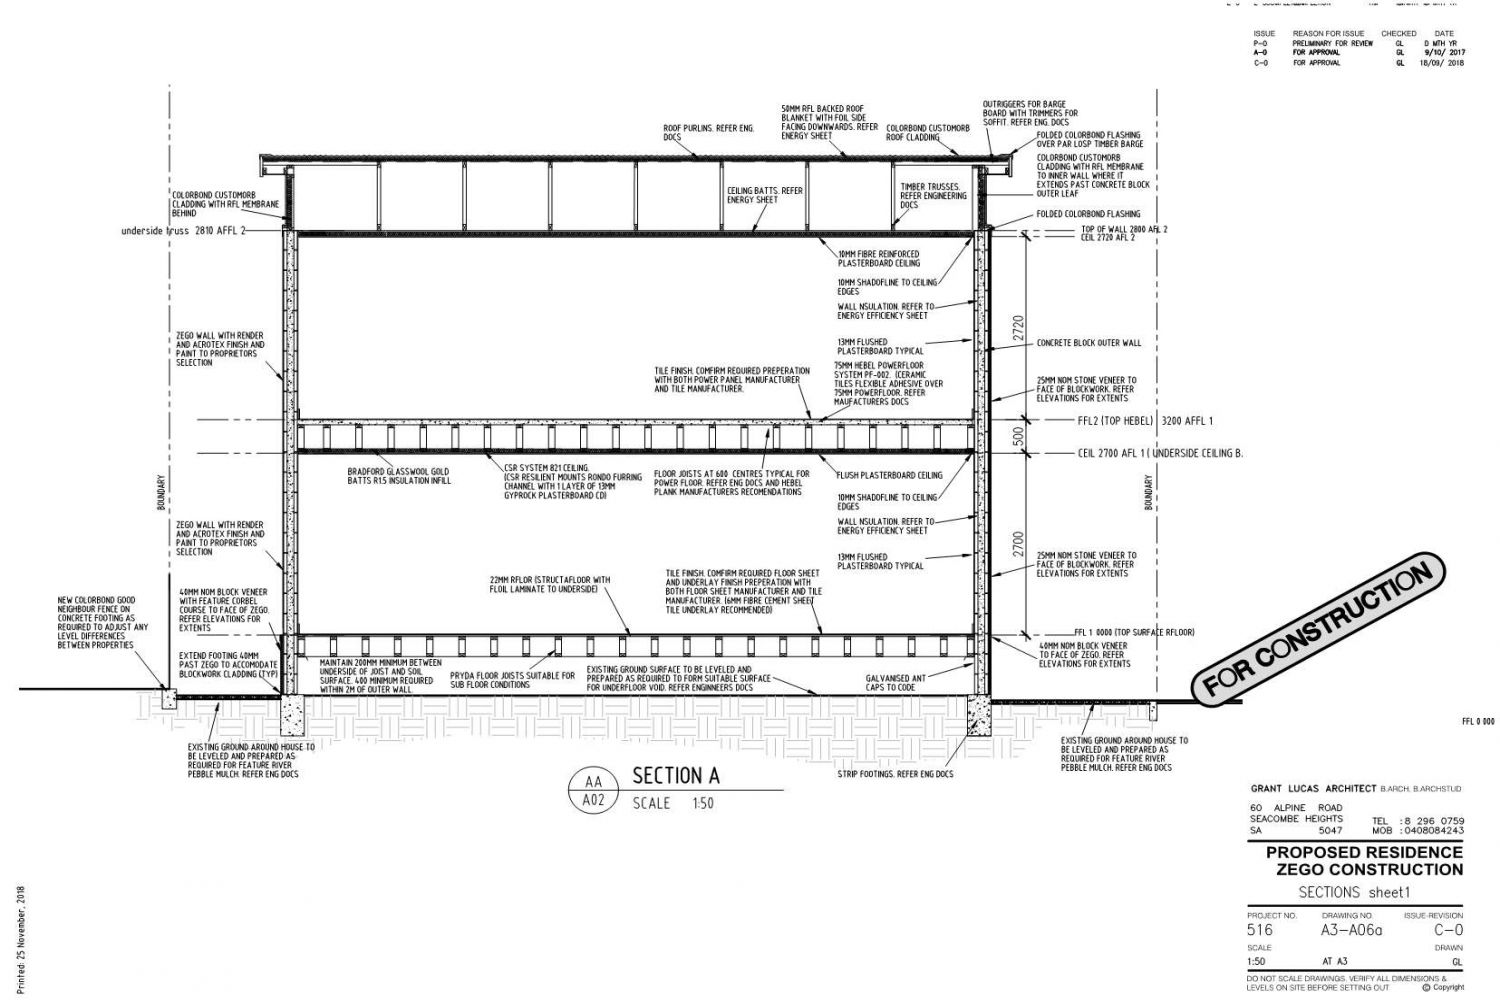 Owner Builder Zego Construction  2 storey Home at Port Noarlunga: Working Drawings Sheet 15: Section sheet 1